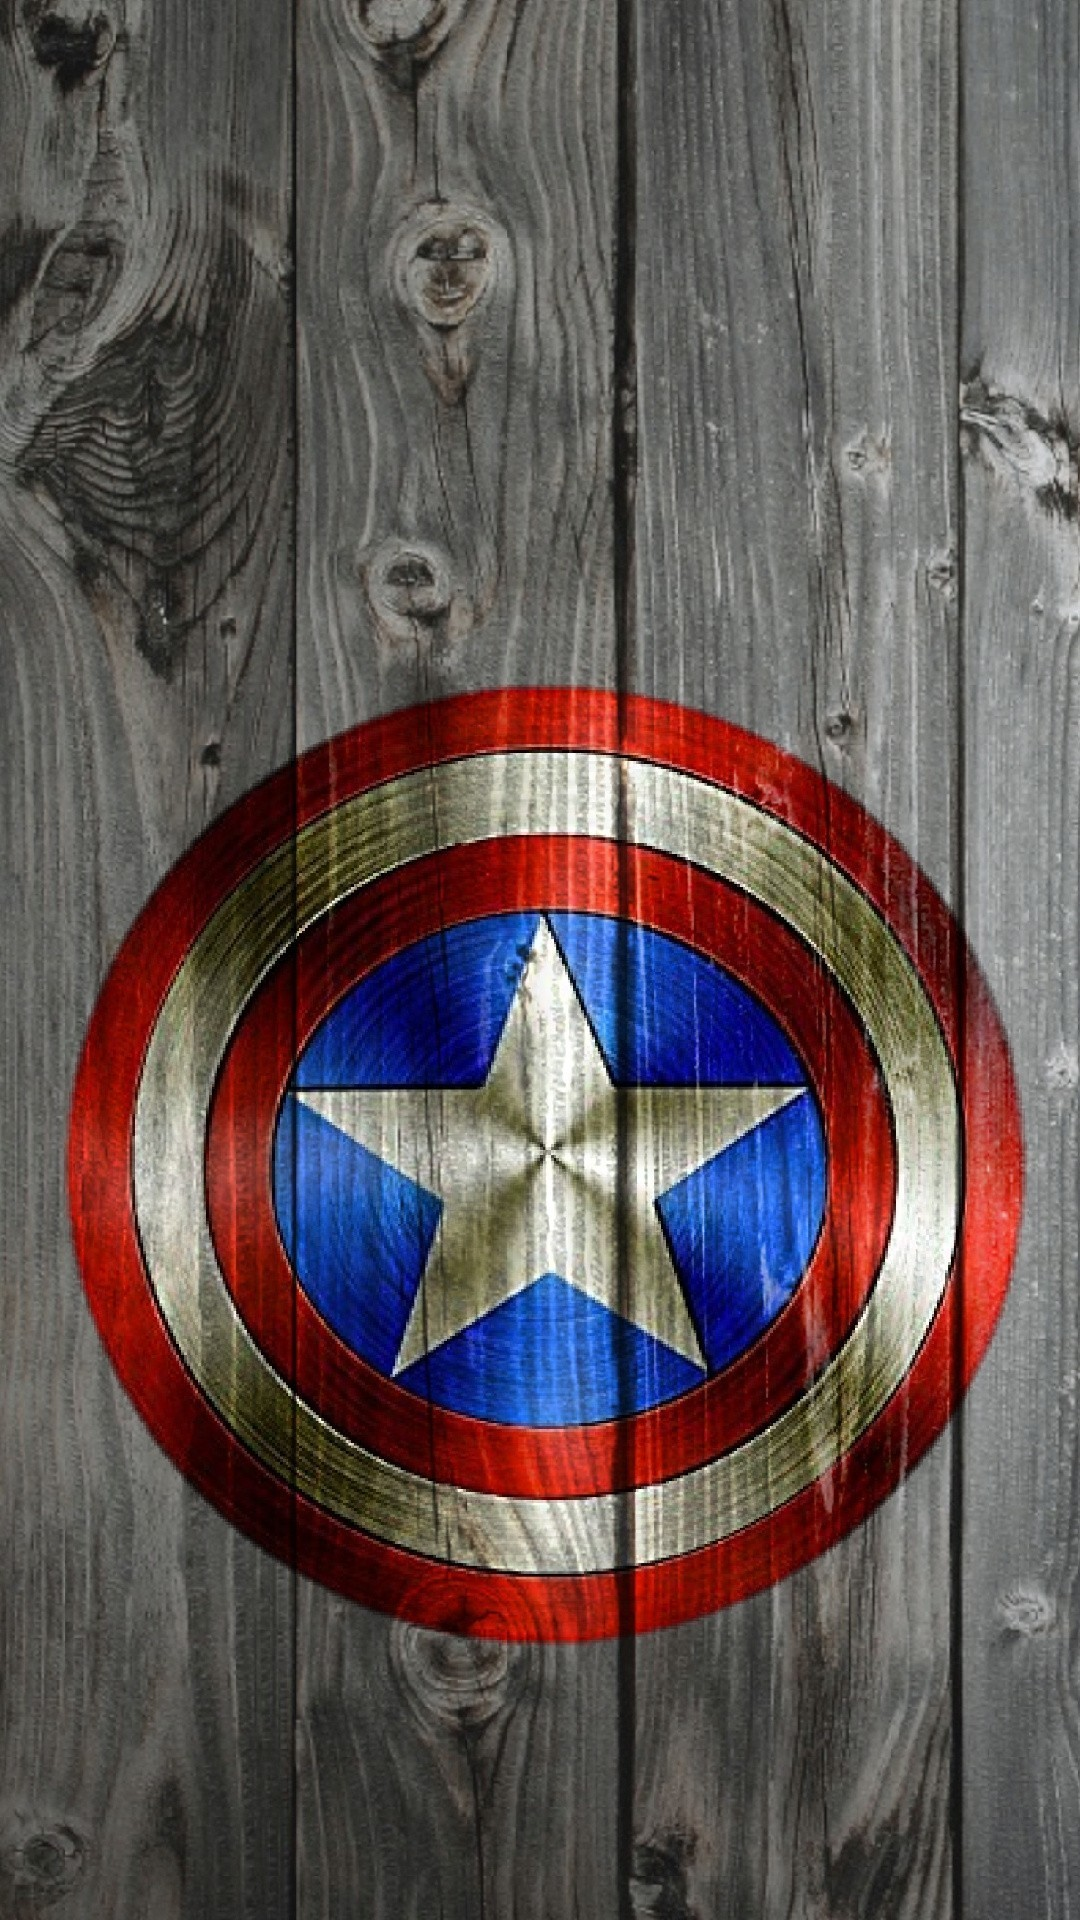 1080x1920 2160x1920 Download SHIELD Lock Screen wallpapers to your cell phone -  avengers captain america iron man marvel